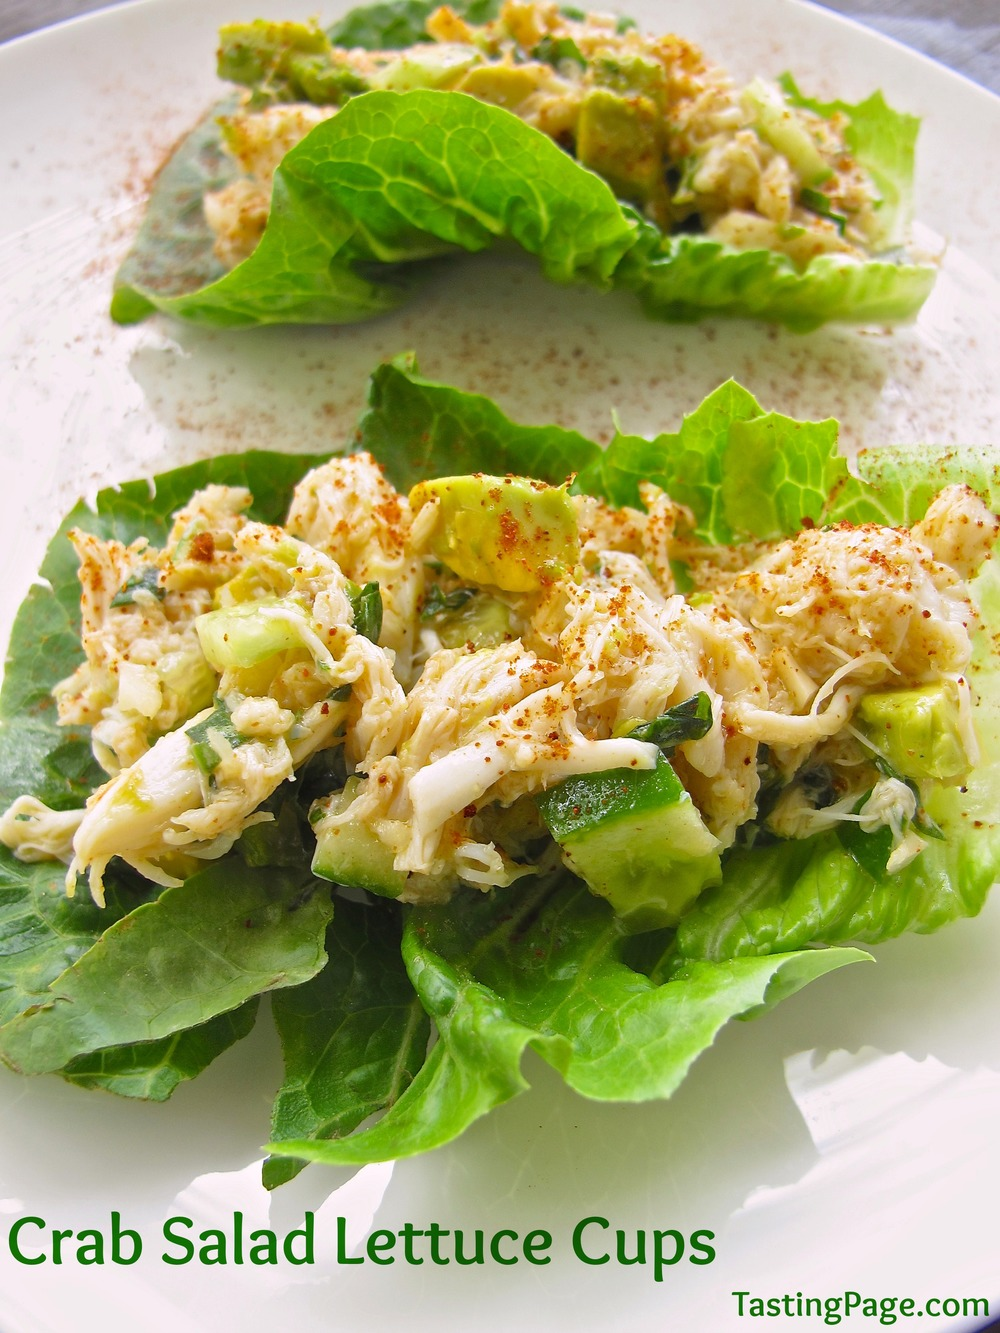 crab and cucumber salad sat inside lettuce cups on a white plate, garnished with paprika